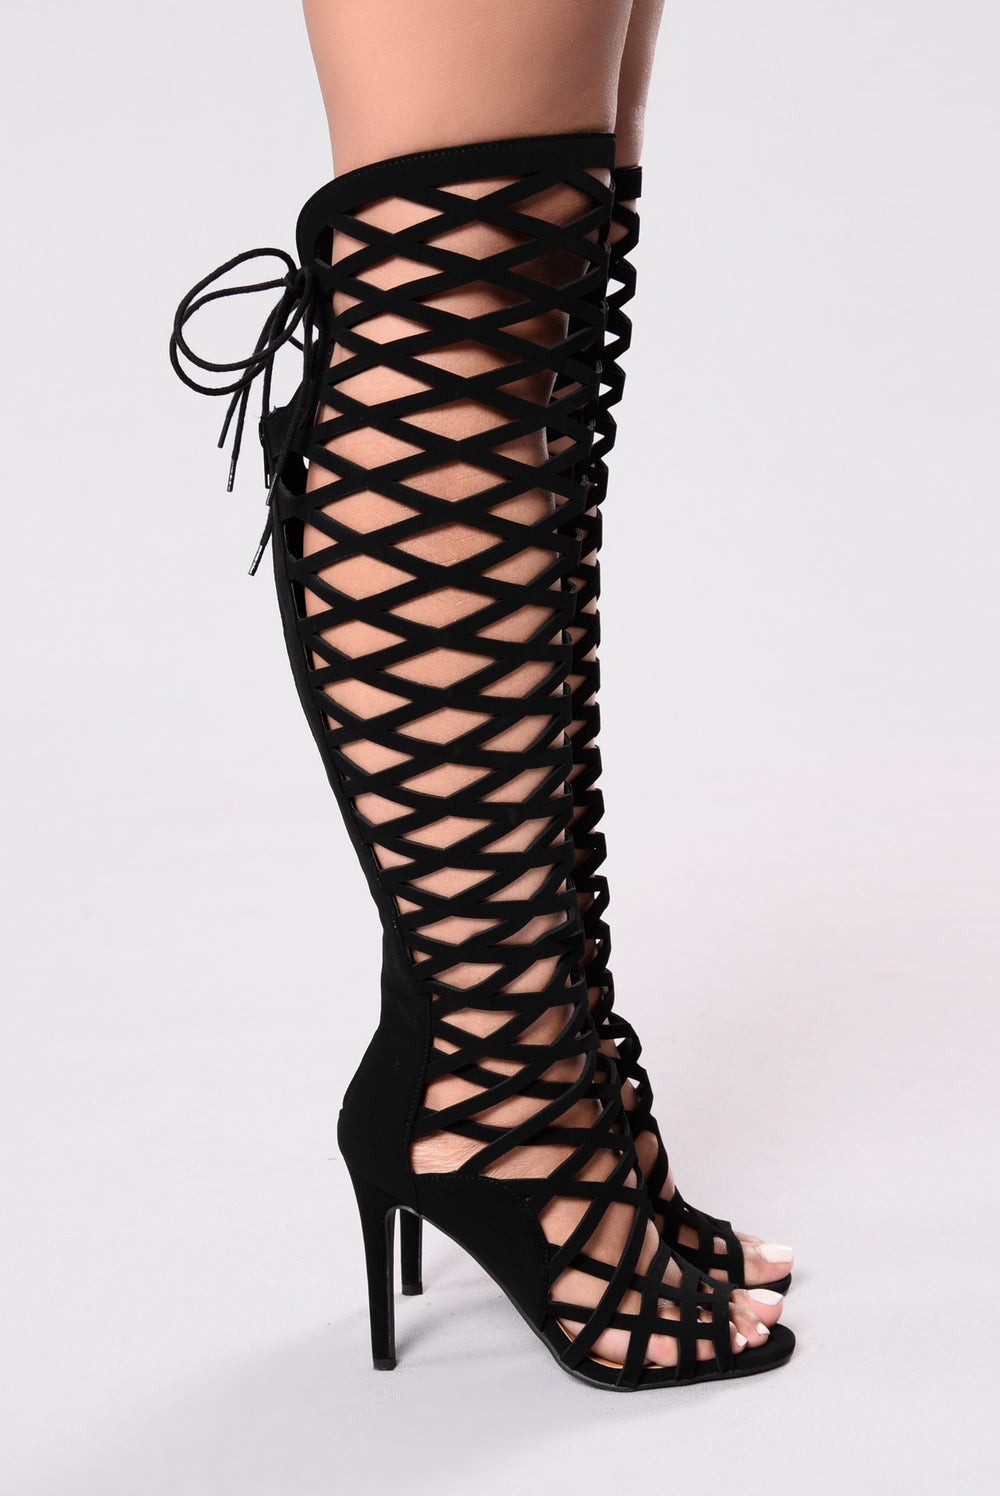 Fences Heel - Black